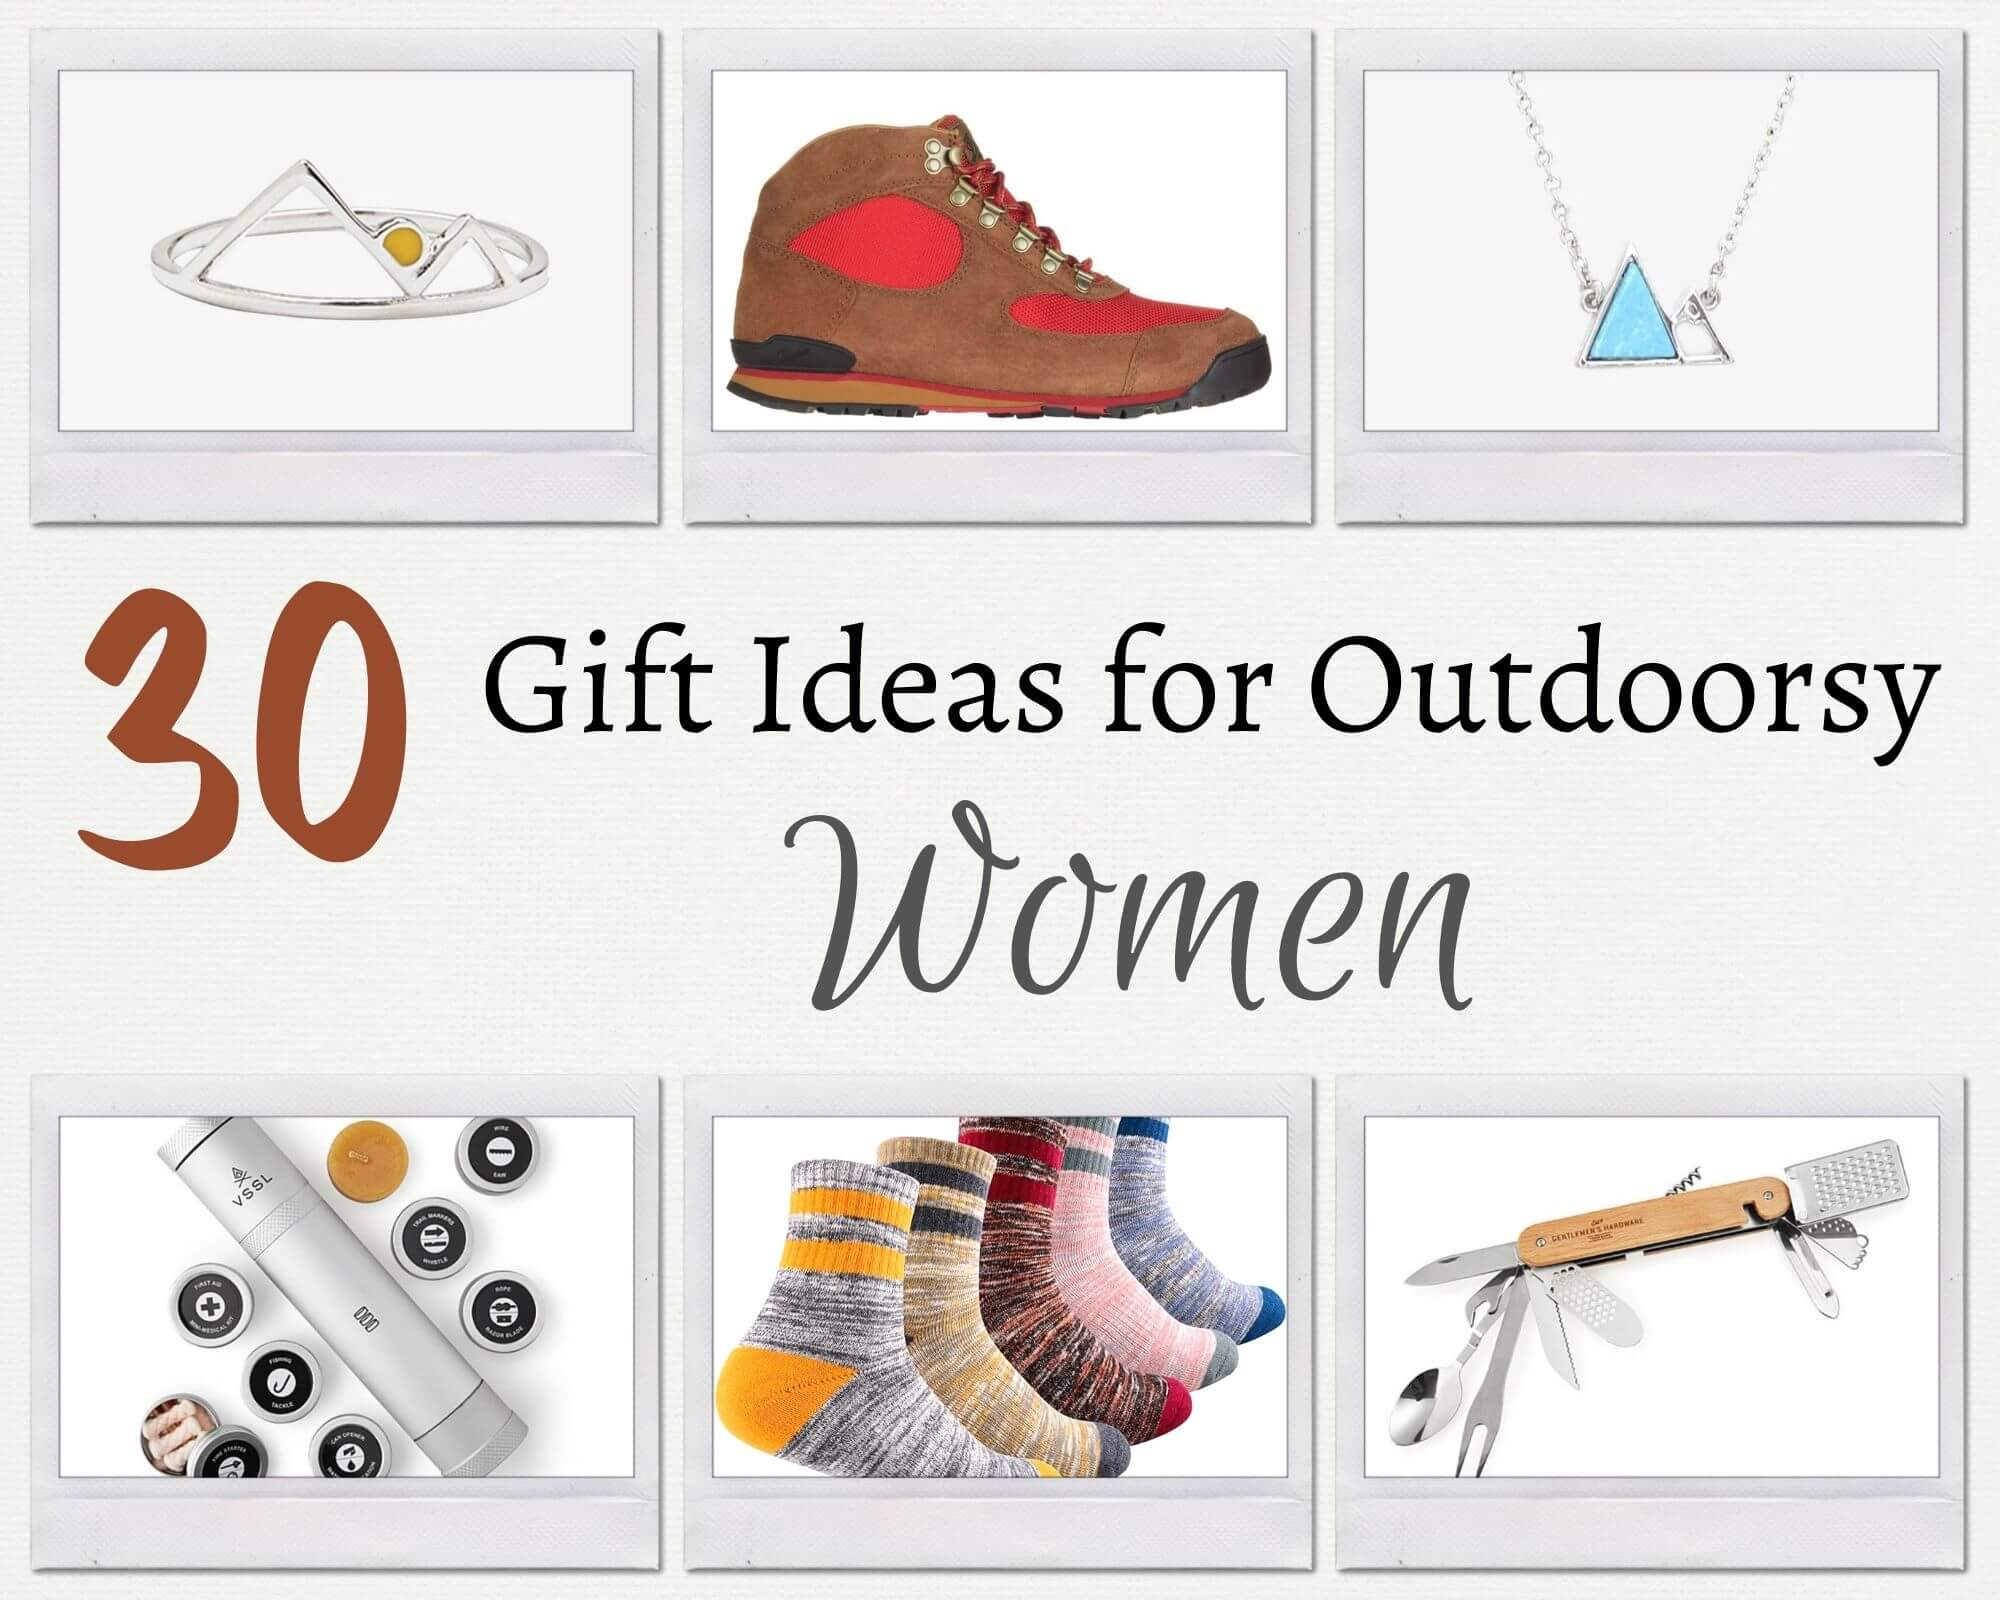 Gift ideas for outdoors women